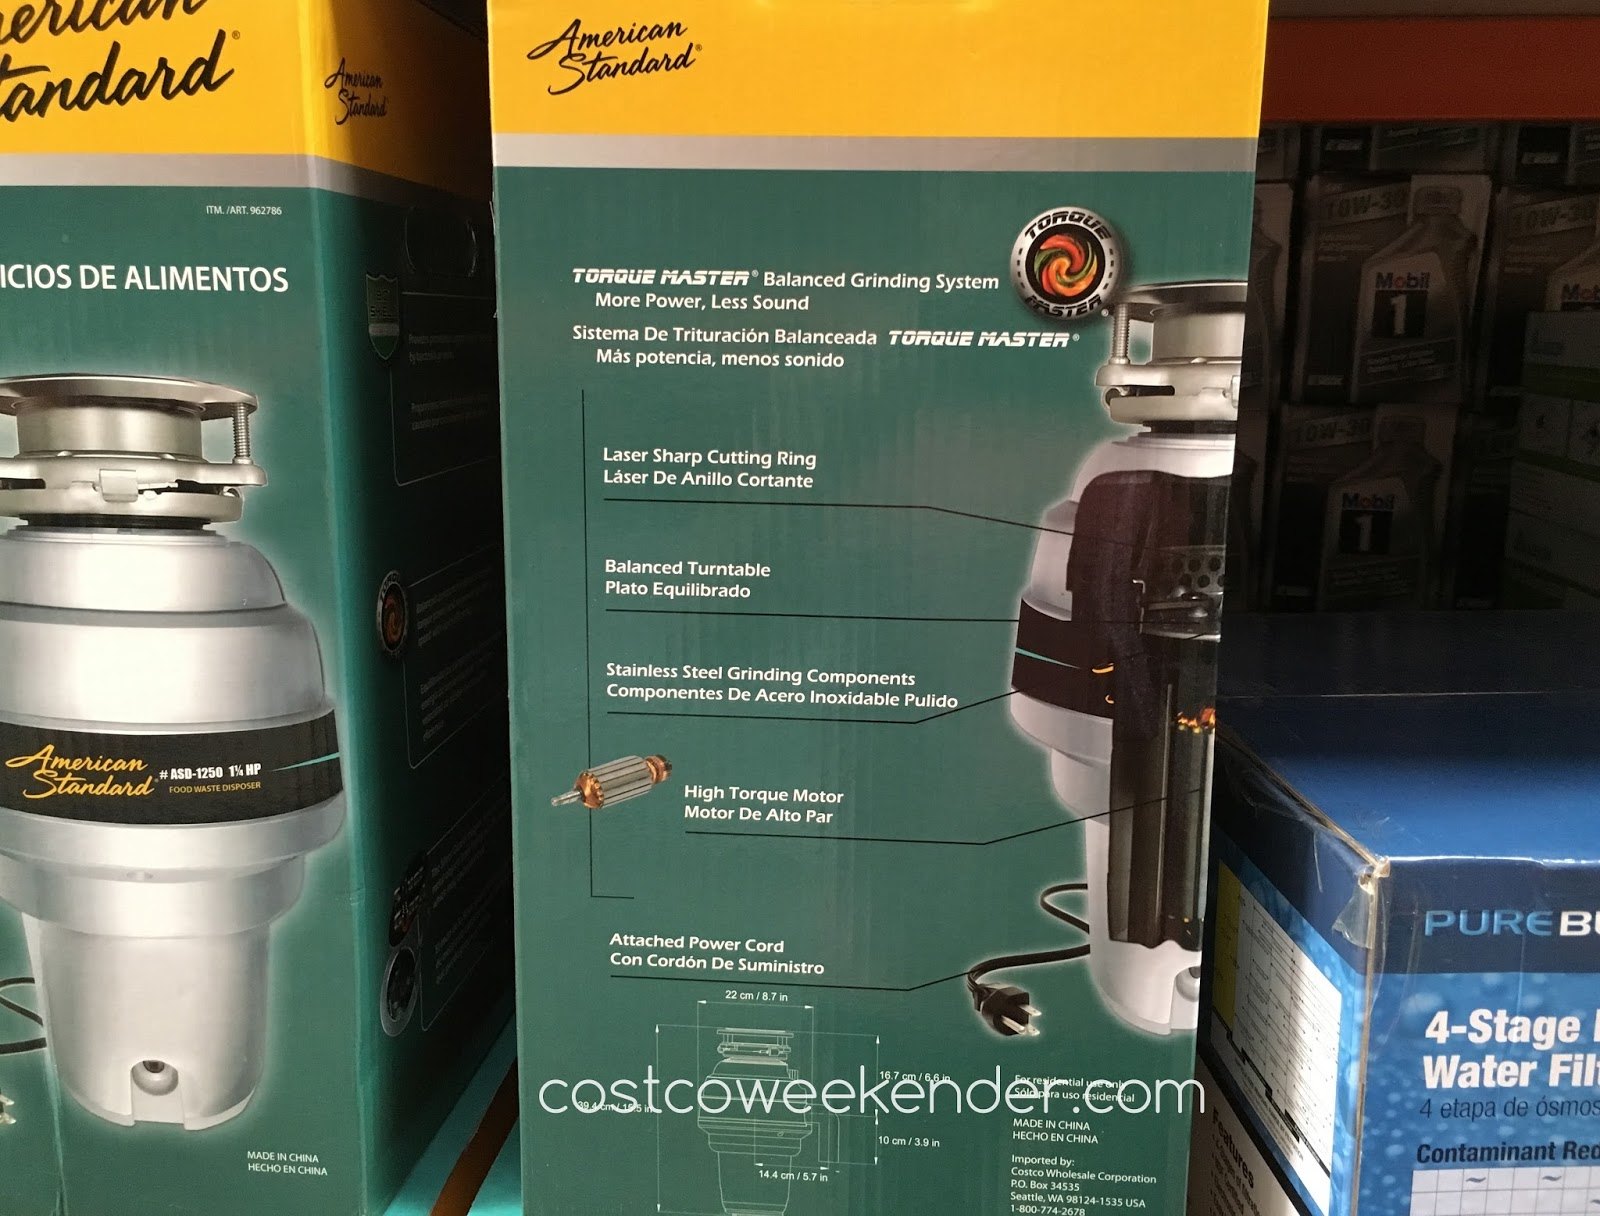 American Standard Asd 1250 Food Waste Disposer Costco